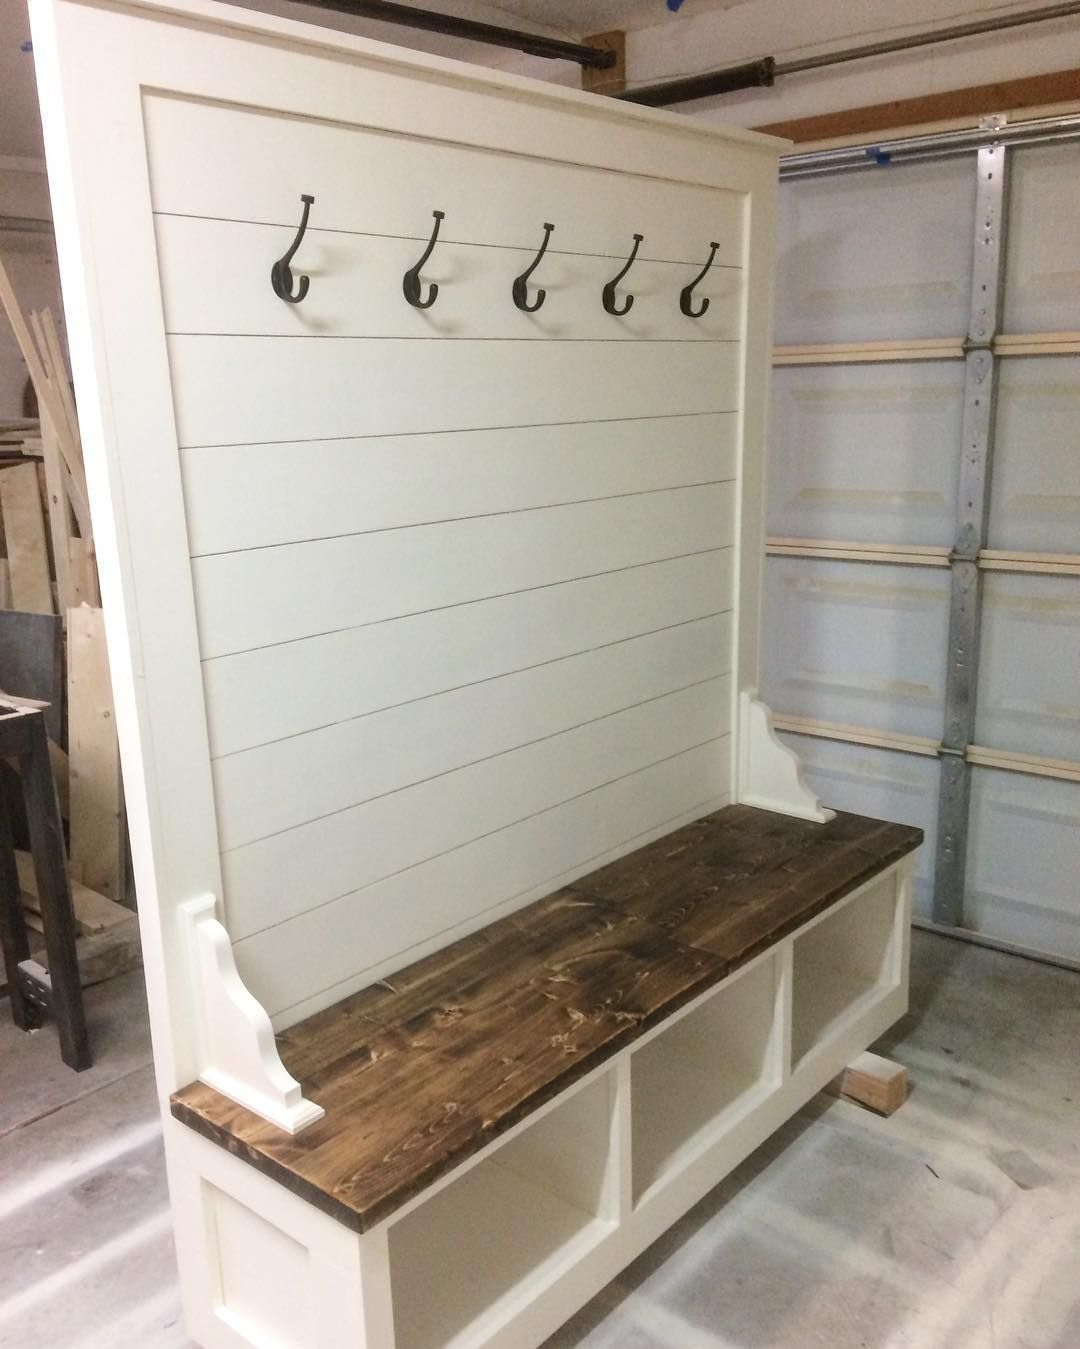 Awesome Builds Shiplap Hall Tree Bench Shiplap Halltree Customfurniture Bench Build